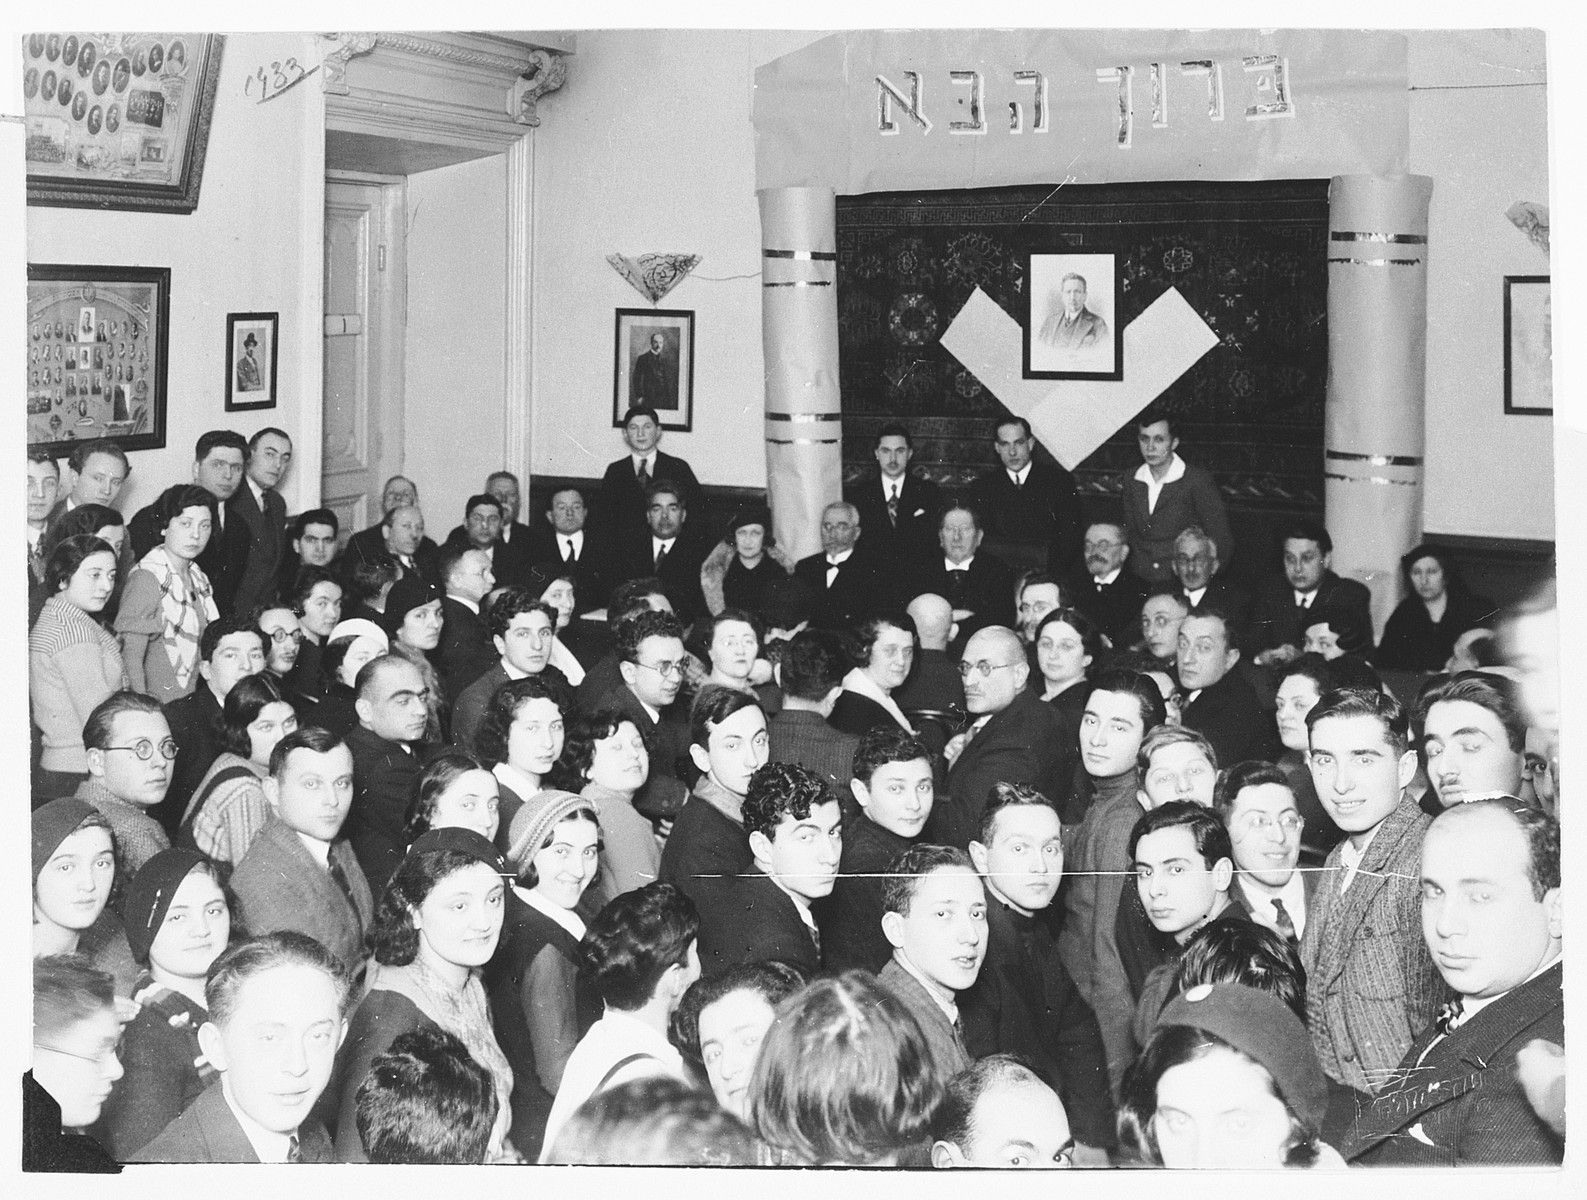 Jewish faculty and students of the Hebrew gymnasium in Vilna are gathered in the auditorium of the school during the visit of Zionist leader Nahum Sokolow.  Among those pictured is Ralph Denishevsky (beneath the Hebrew welcome sign, second from the right).